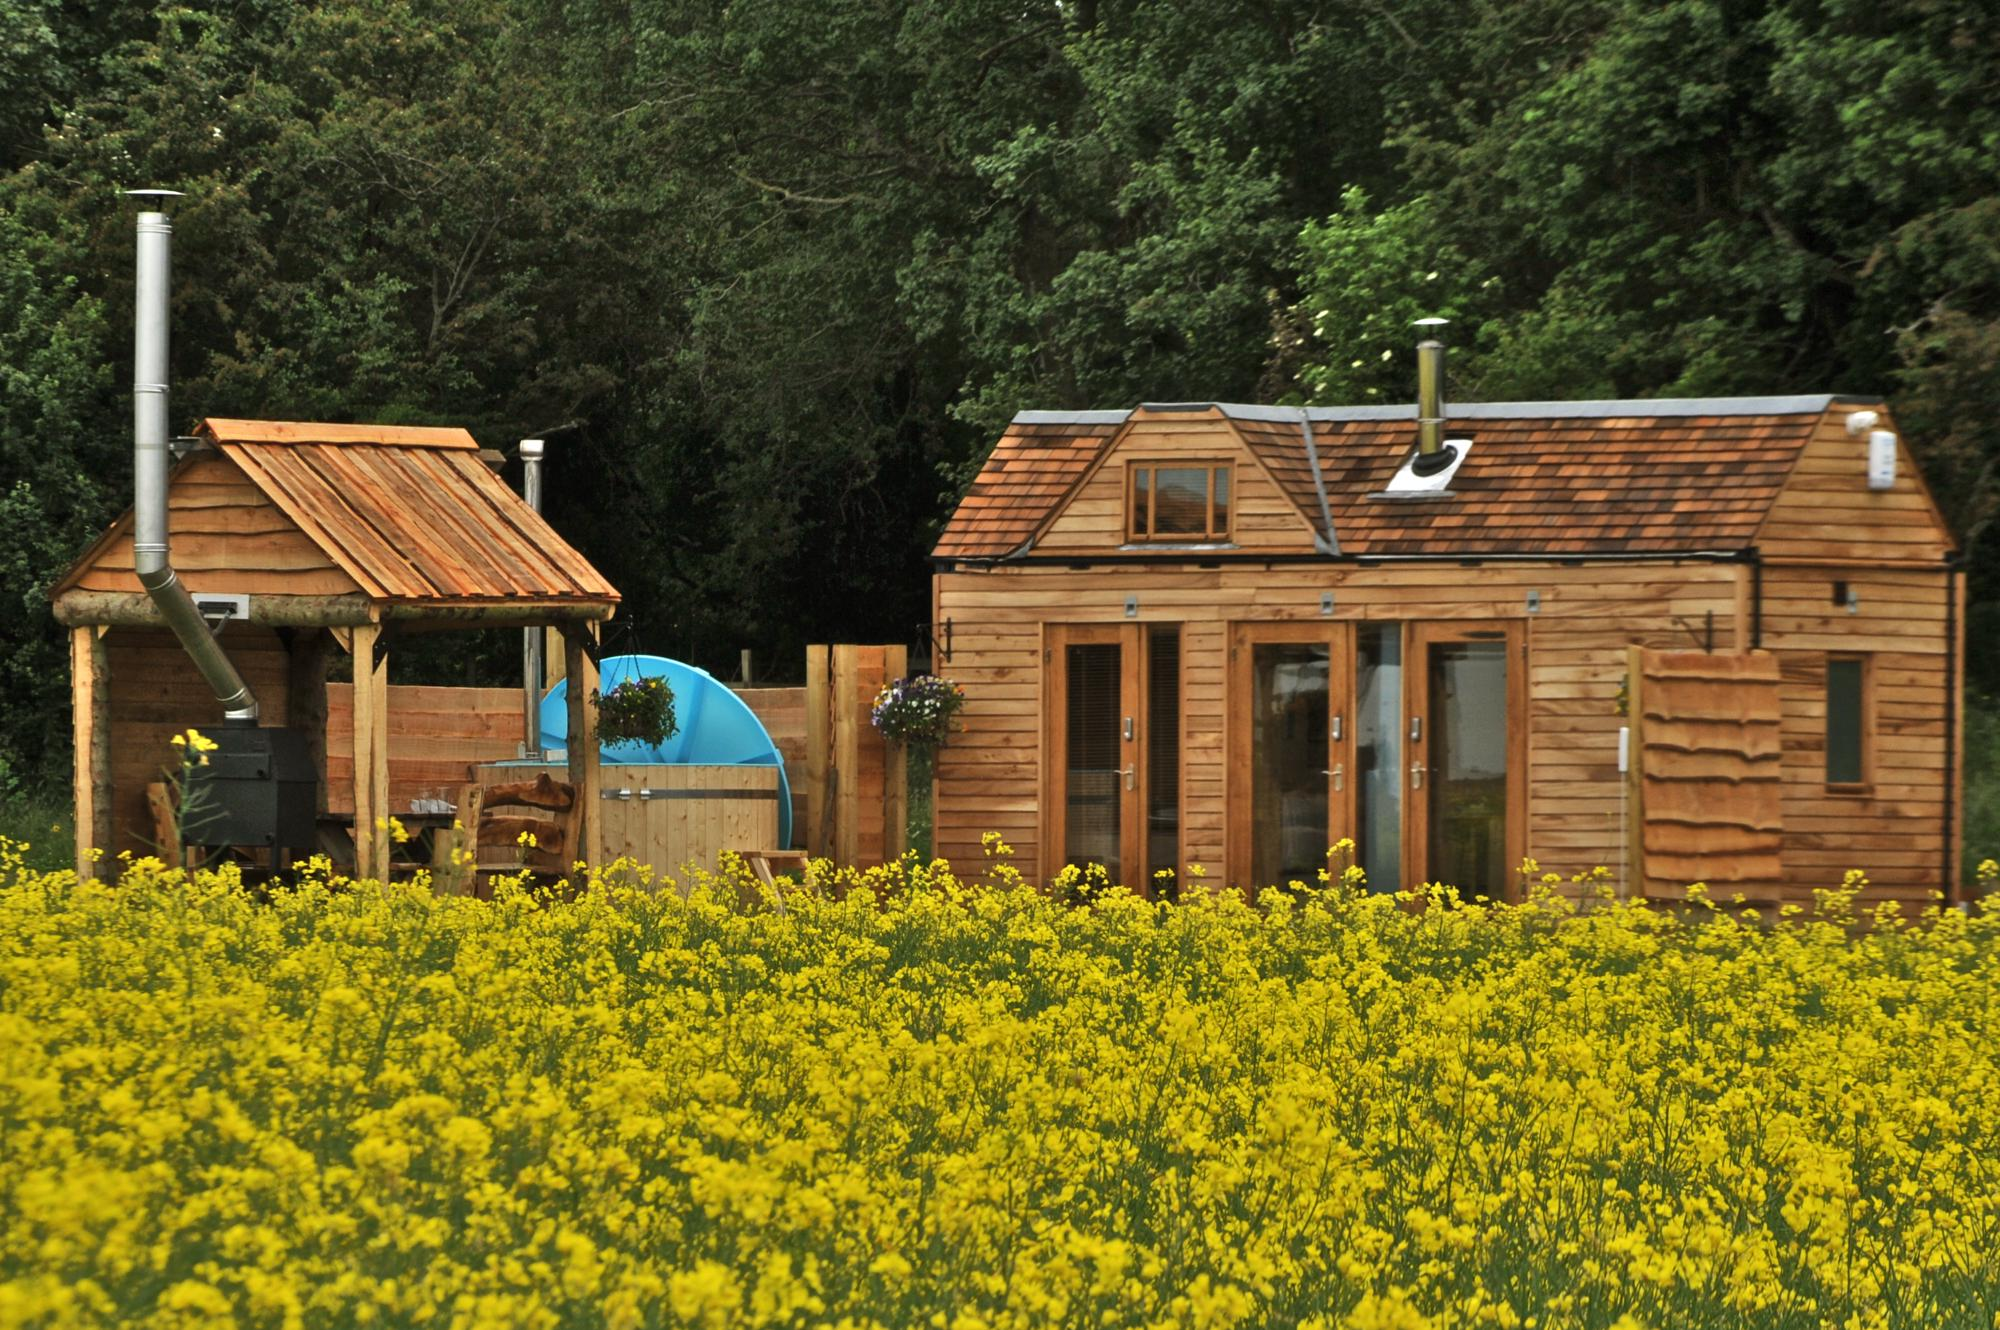 Glamping in Warwickshire holidays at Cool Places